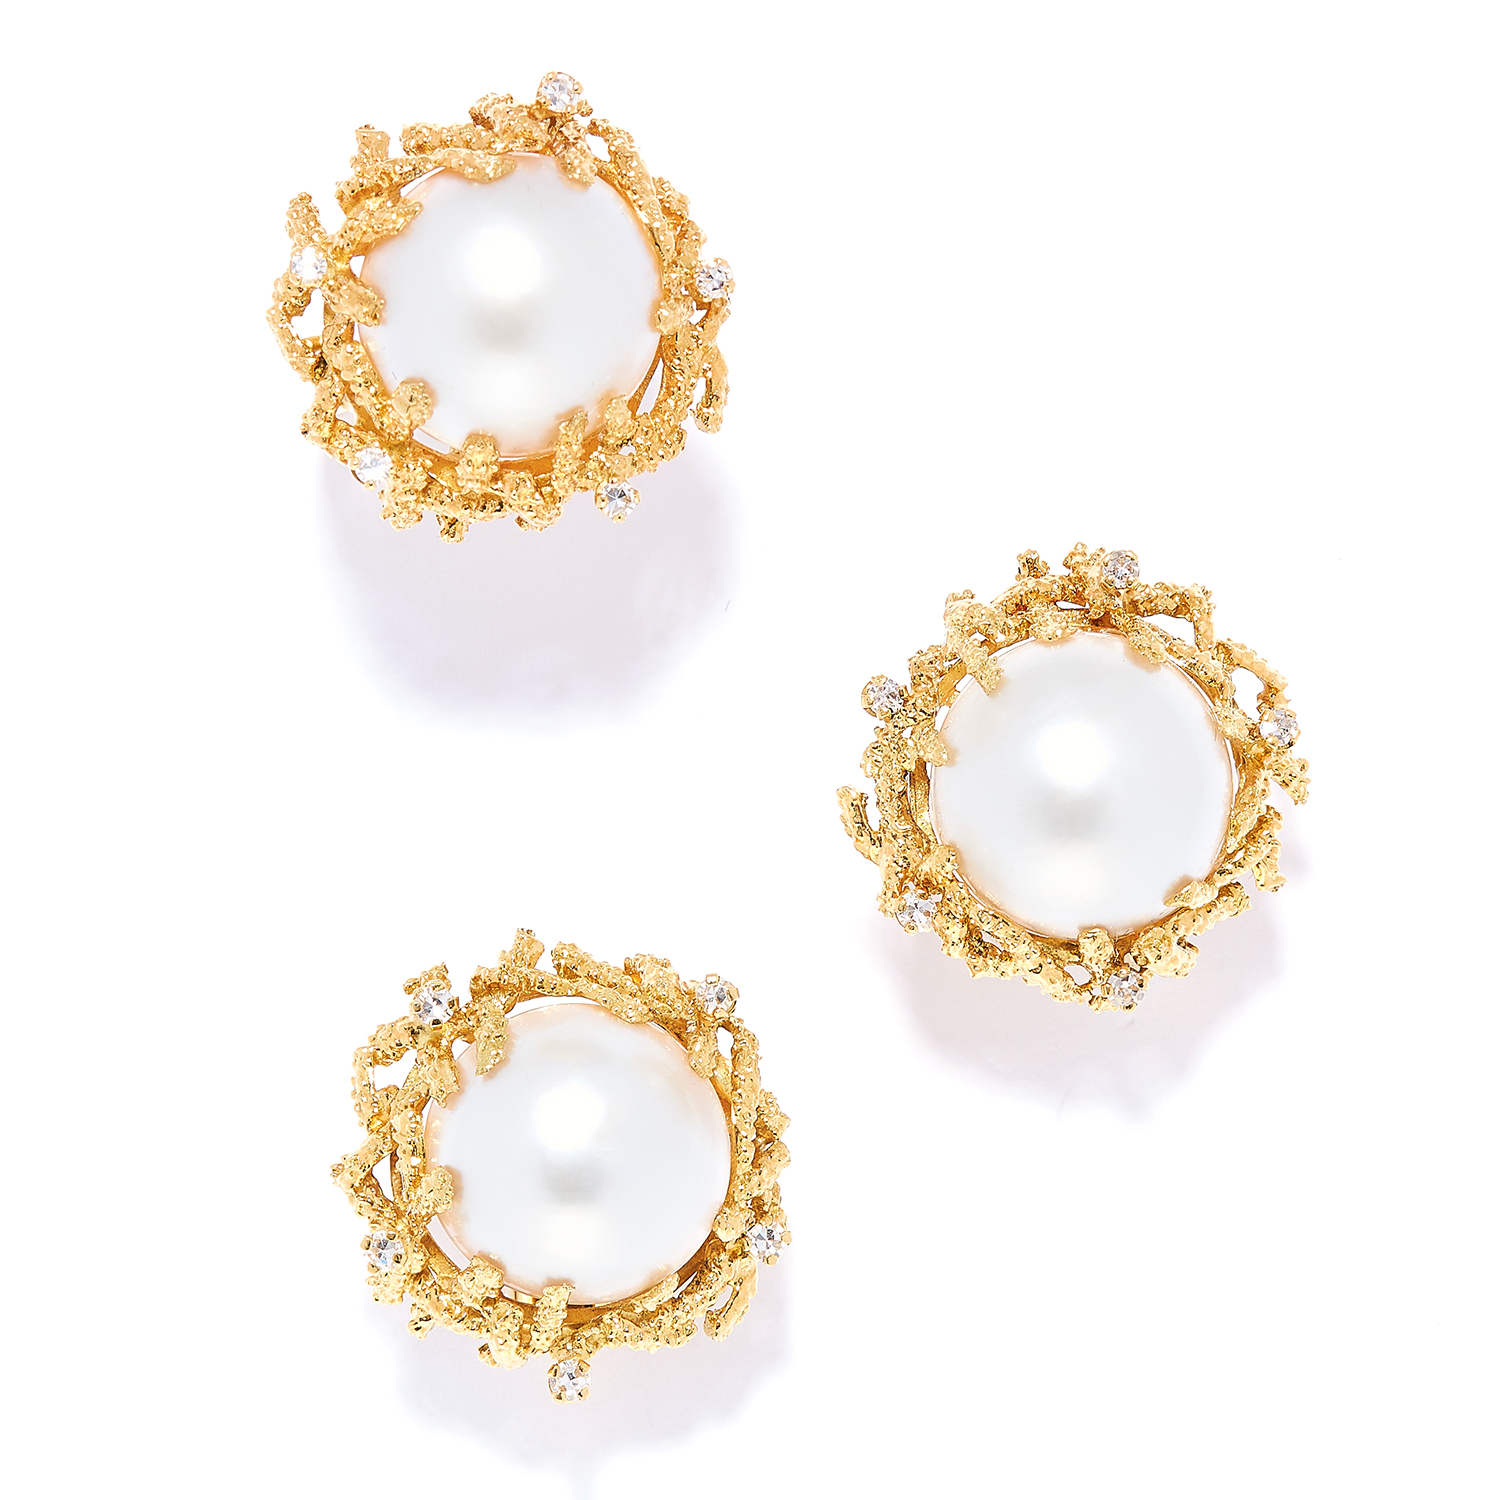 Los 47 - PEARL AND DIAMOND RING AND EARRINGS SUITE, BEN ROSENFELD, CIRCA 1976-77 each comprising of a mabe